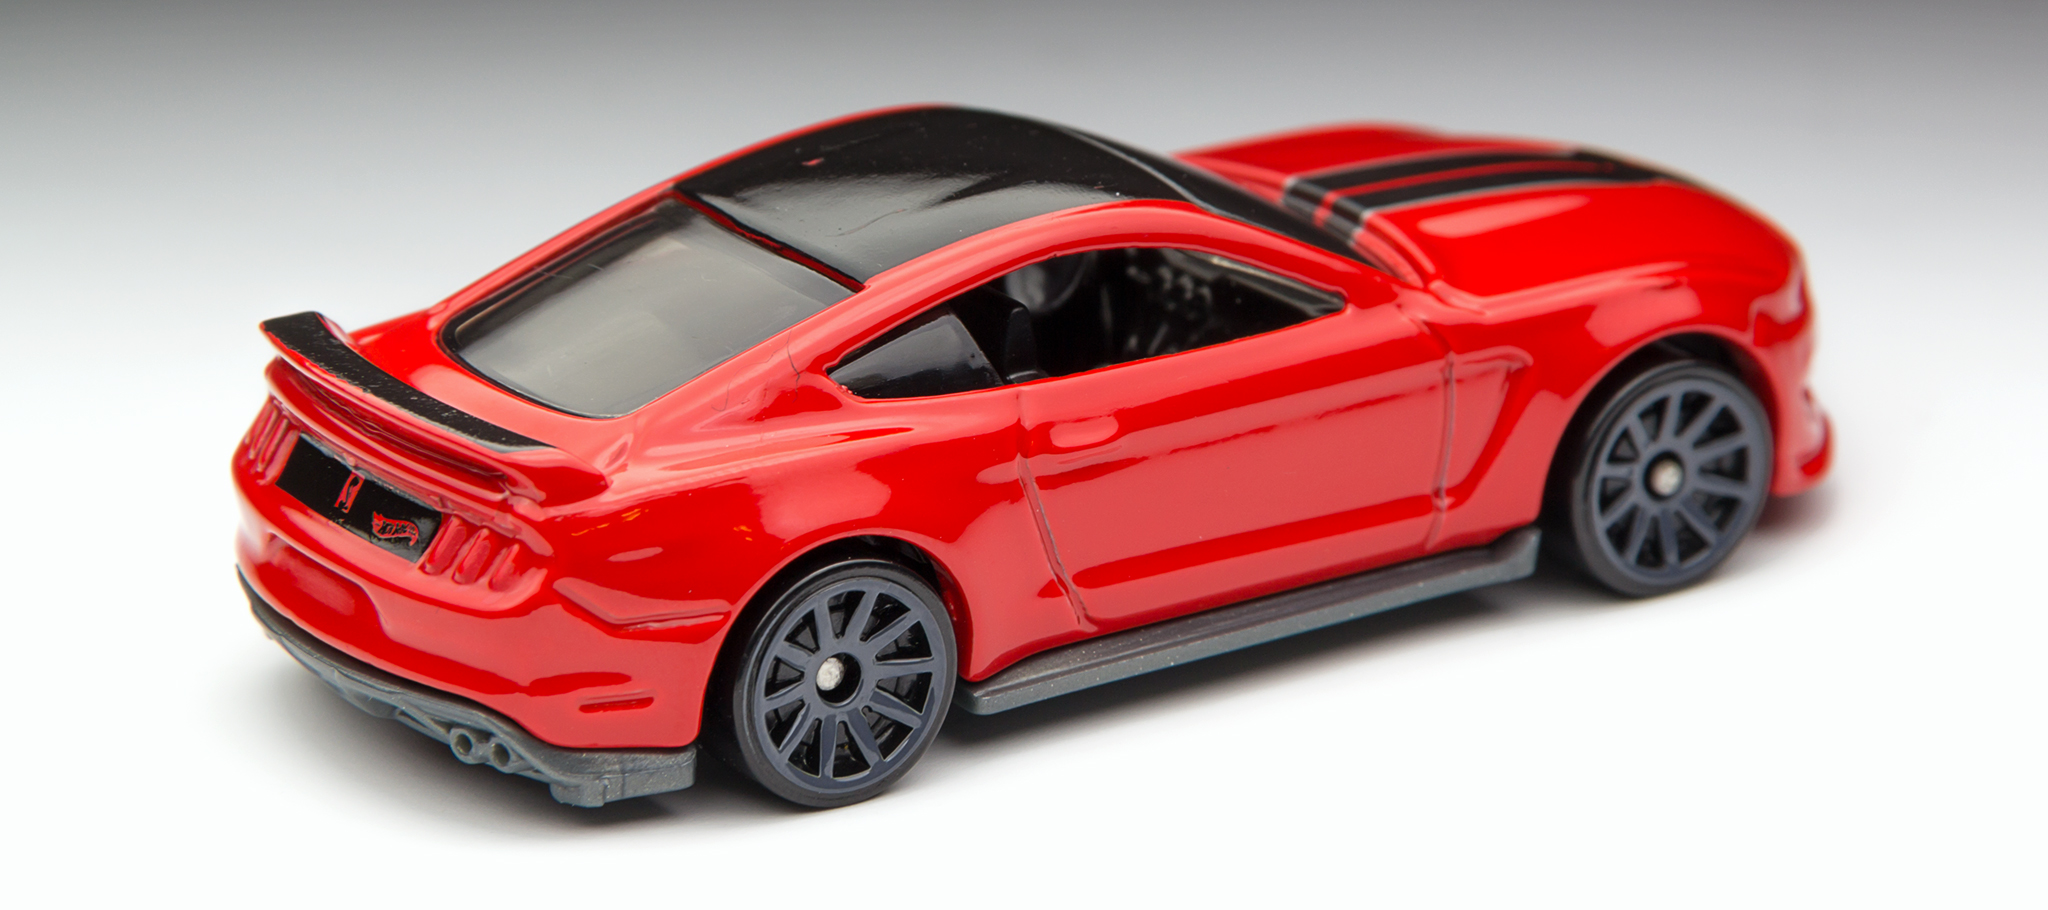 2016 Hot Wheels Ford Mustang Shelby GT350R - Overhead